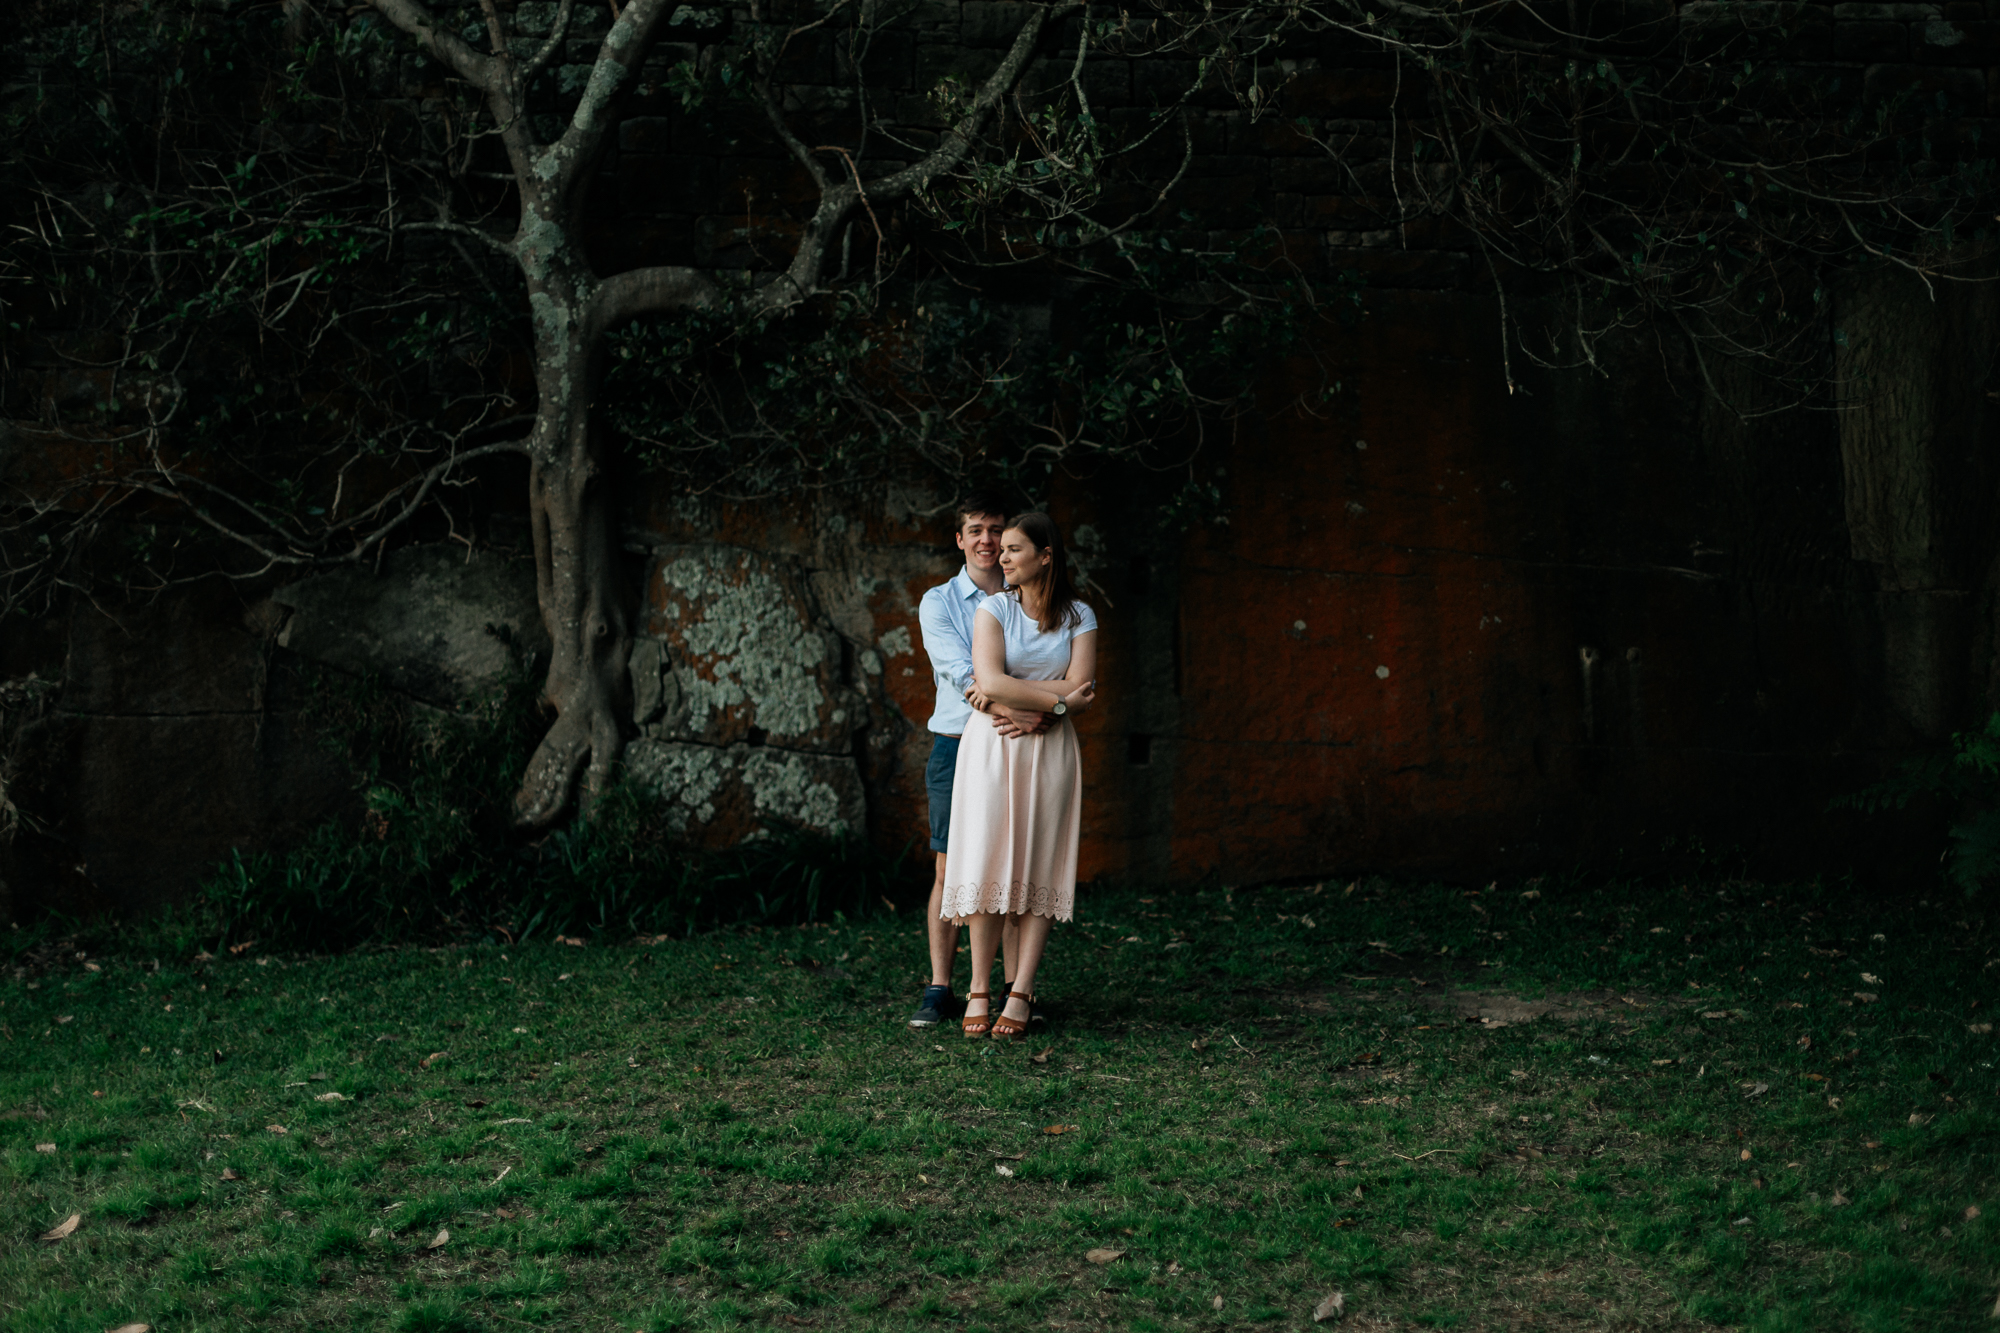 Amanzi and Steven_Engagement_Sydney_Holly Medway Photography-29.JPG